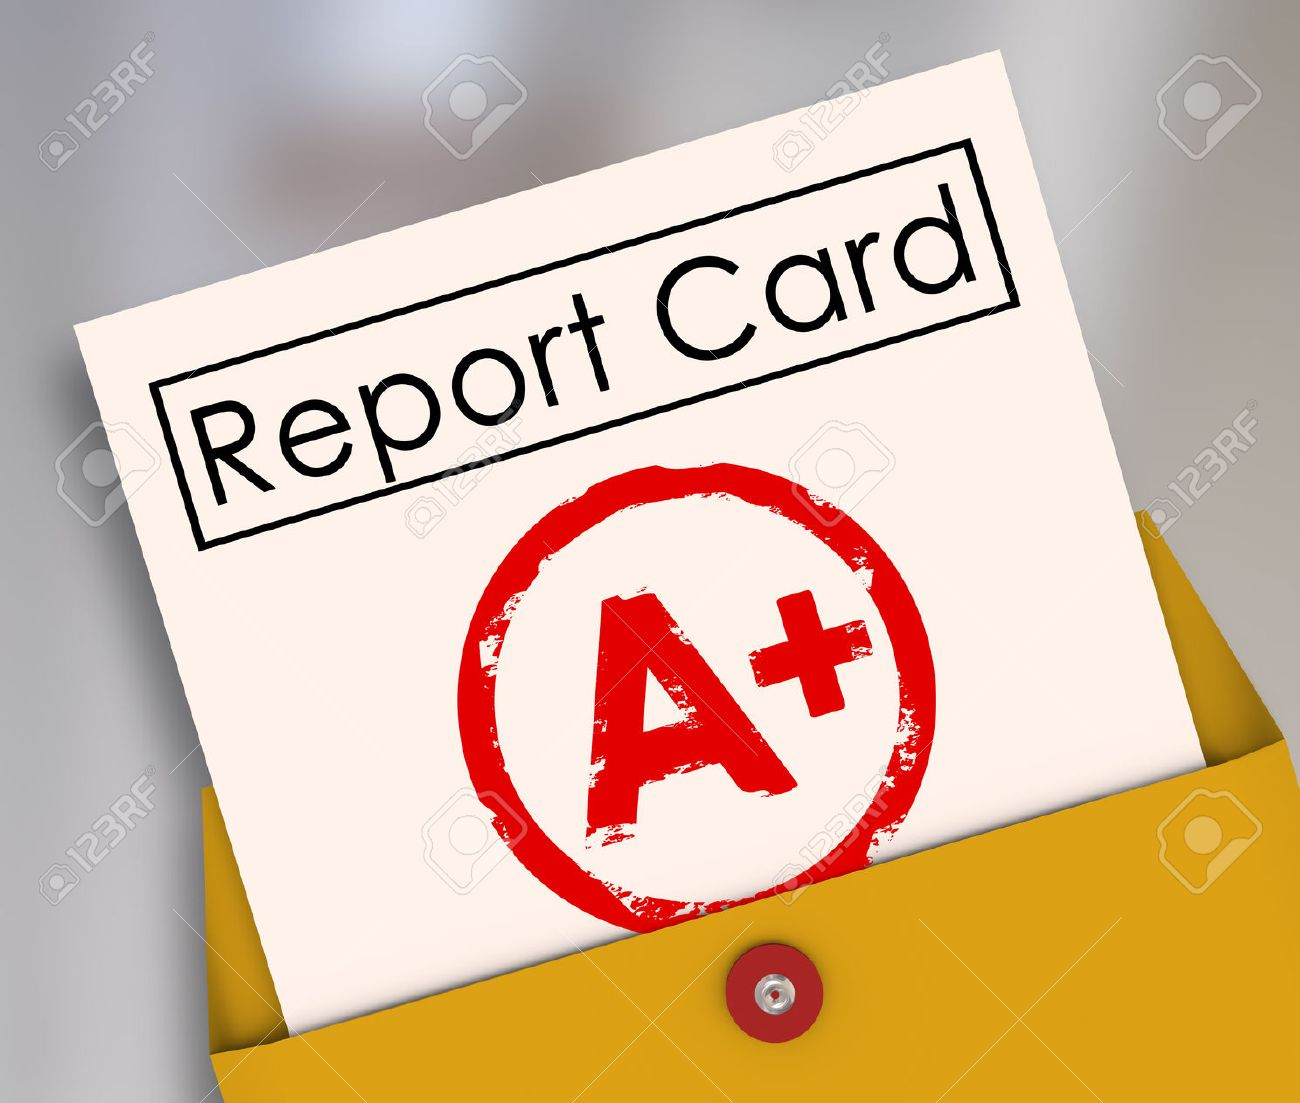 good grades stock photos images royalty good grades images good grades report card a or plus stamped on it in a yellow envelope